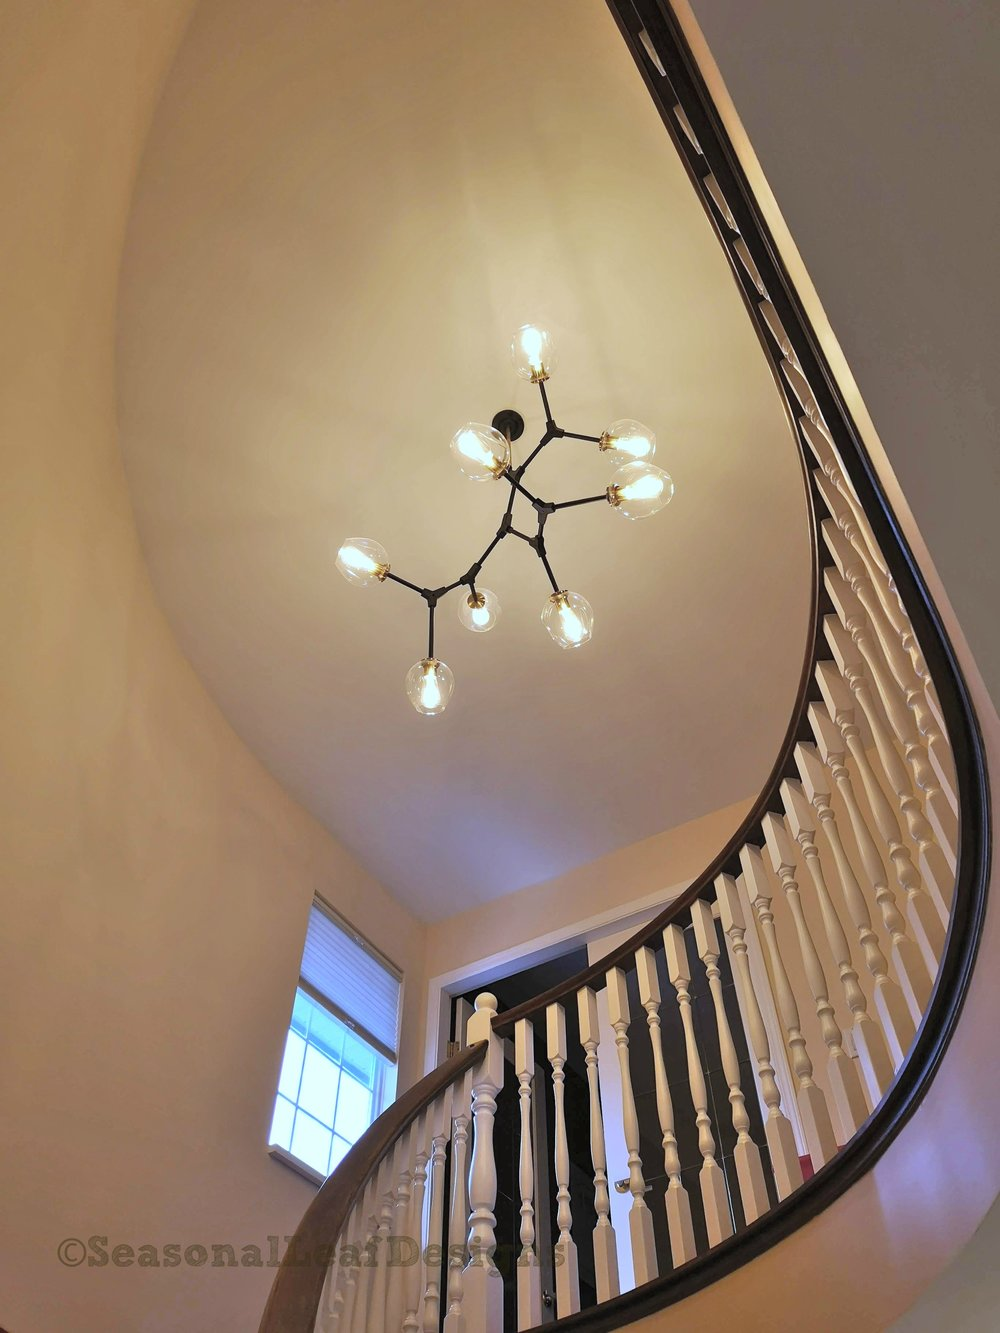 Staircase details and lighting